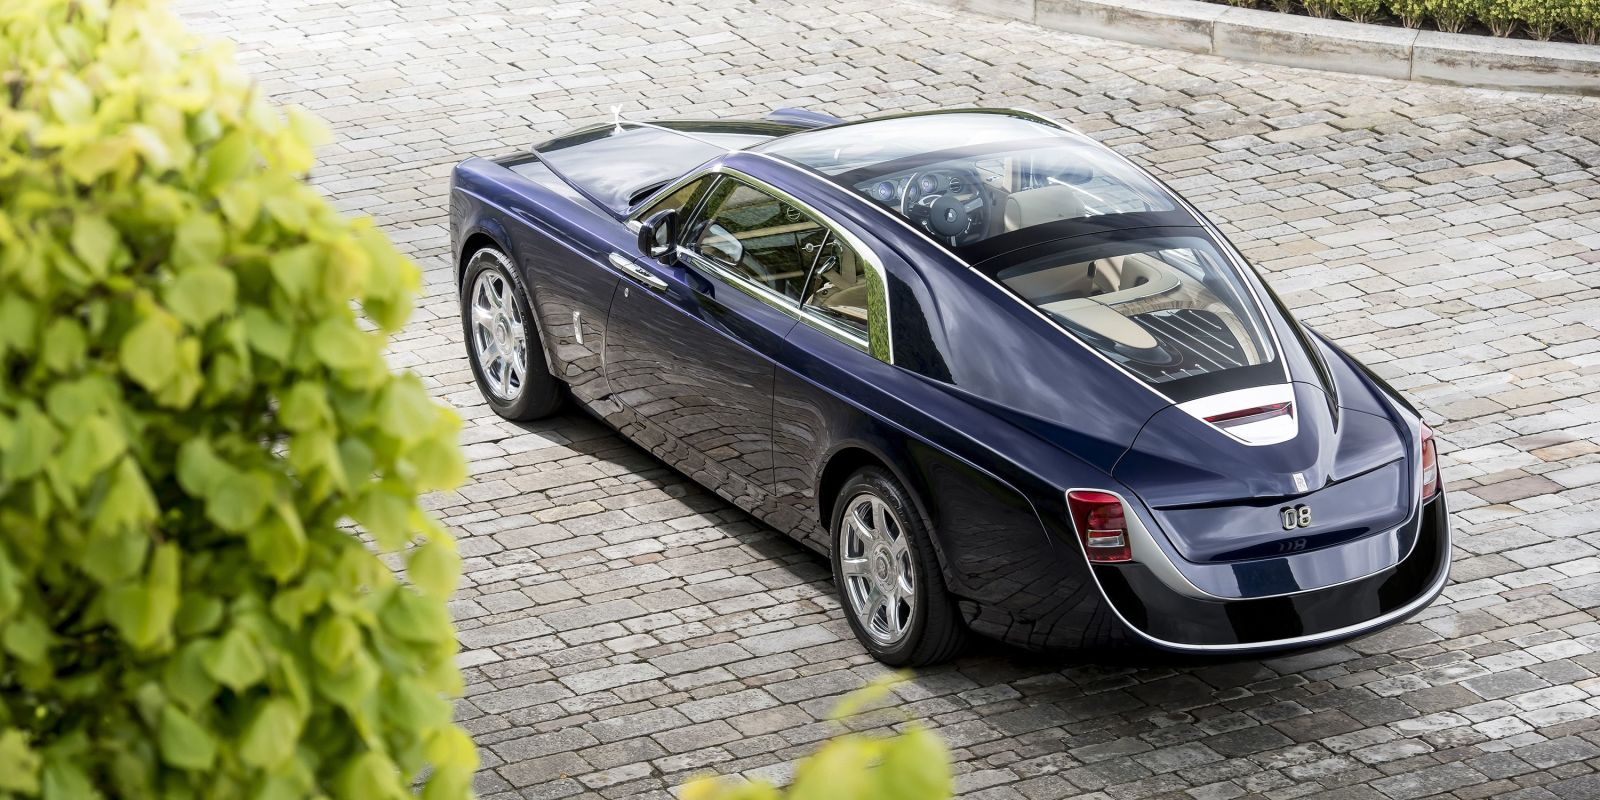 $13 Million Rolls-Royce Sweptail is The Most Expensive Car In The ...